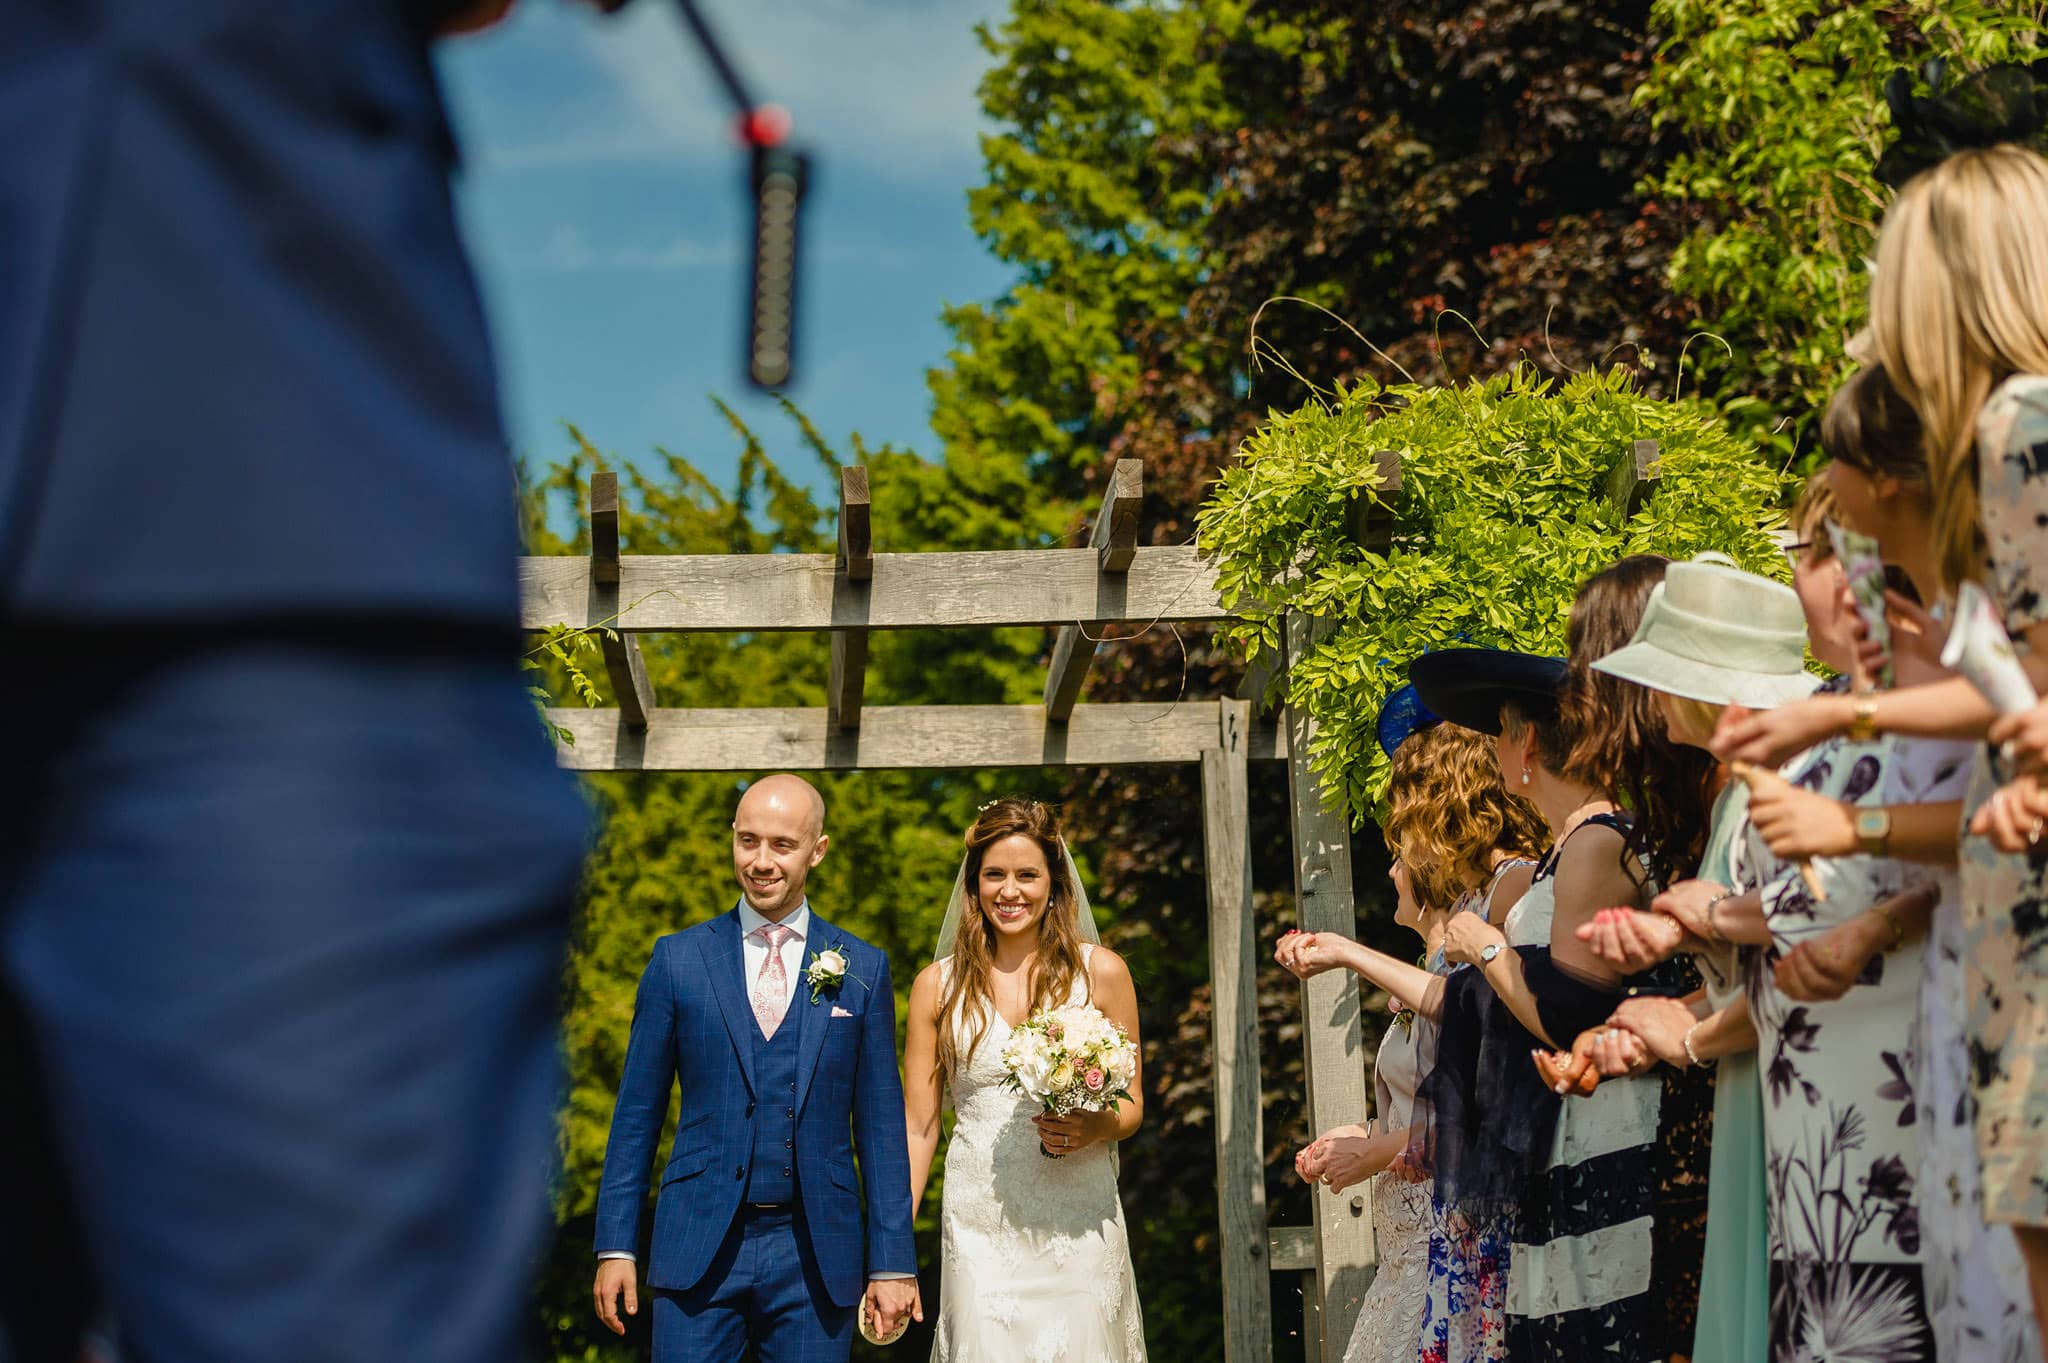 Wedding at Redhouse Barn in Stoke Prior, Worcestershire 69